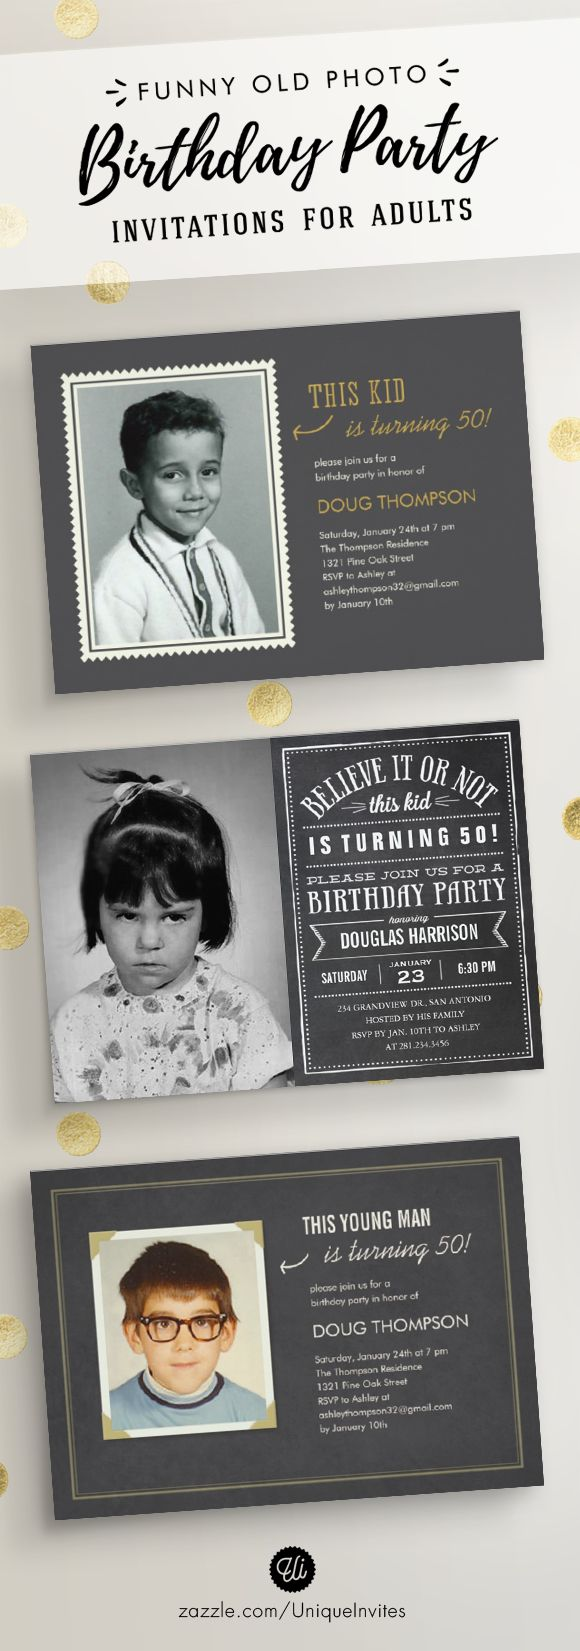 Funny Old Photo Birthday Party Invitations for Adults